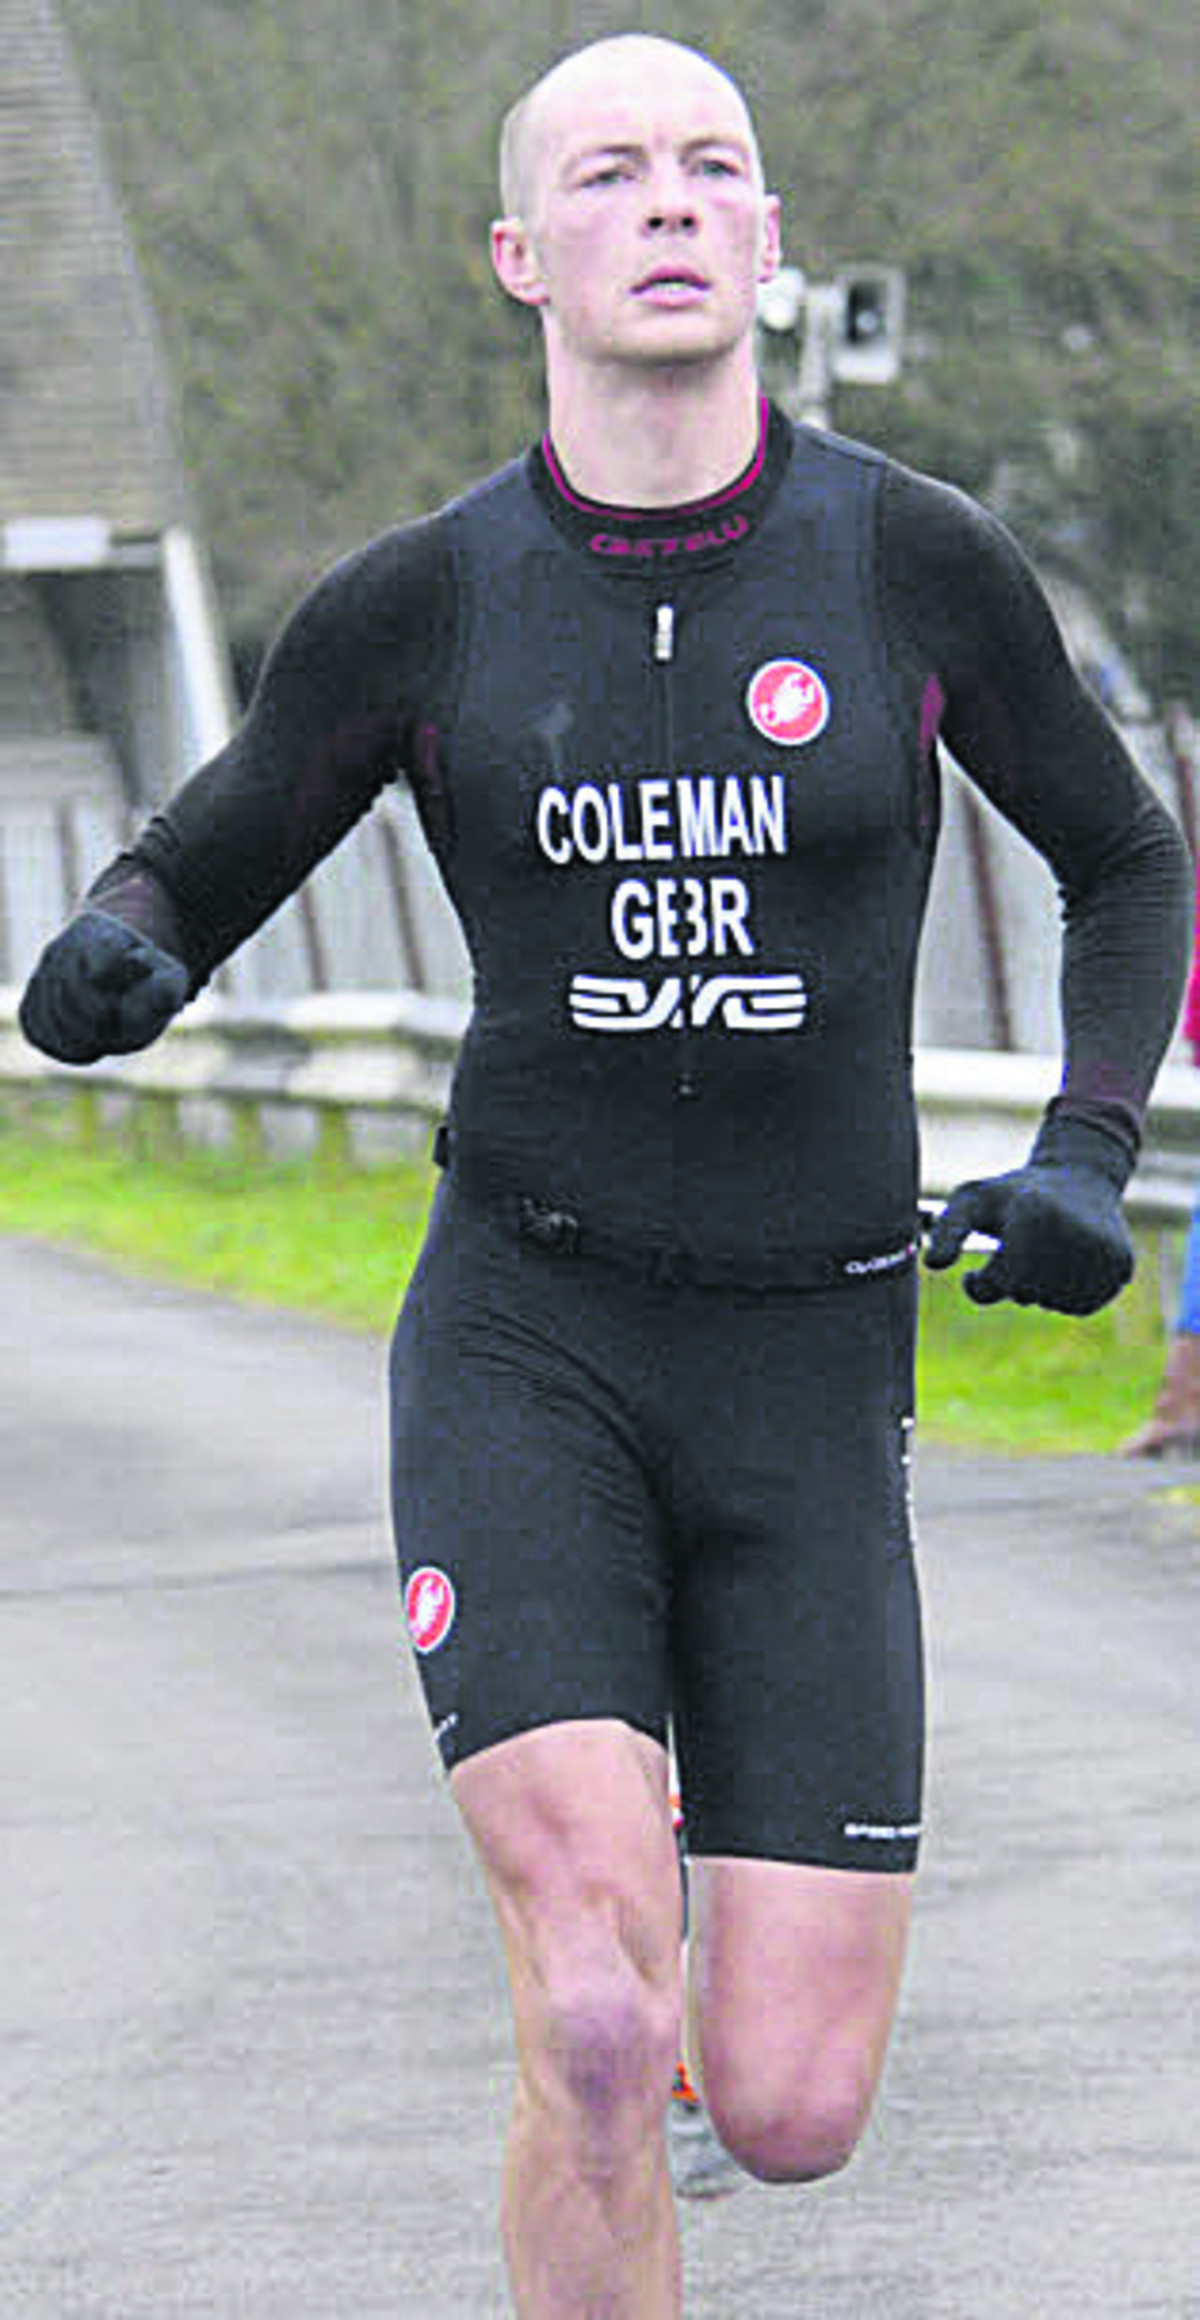 DUATHLON: Coleman burns off his rivals with Chilly triumph